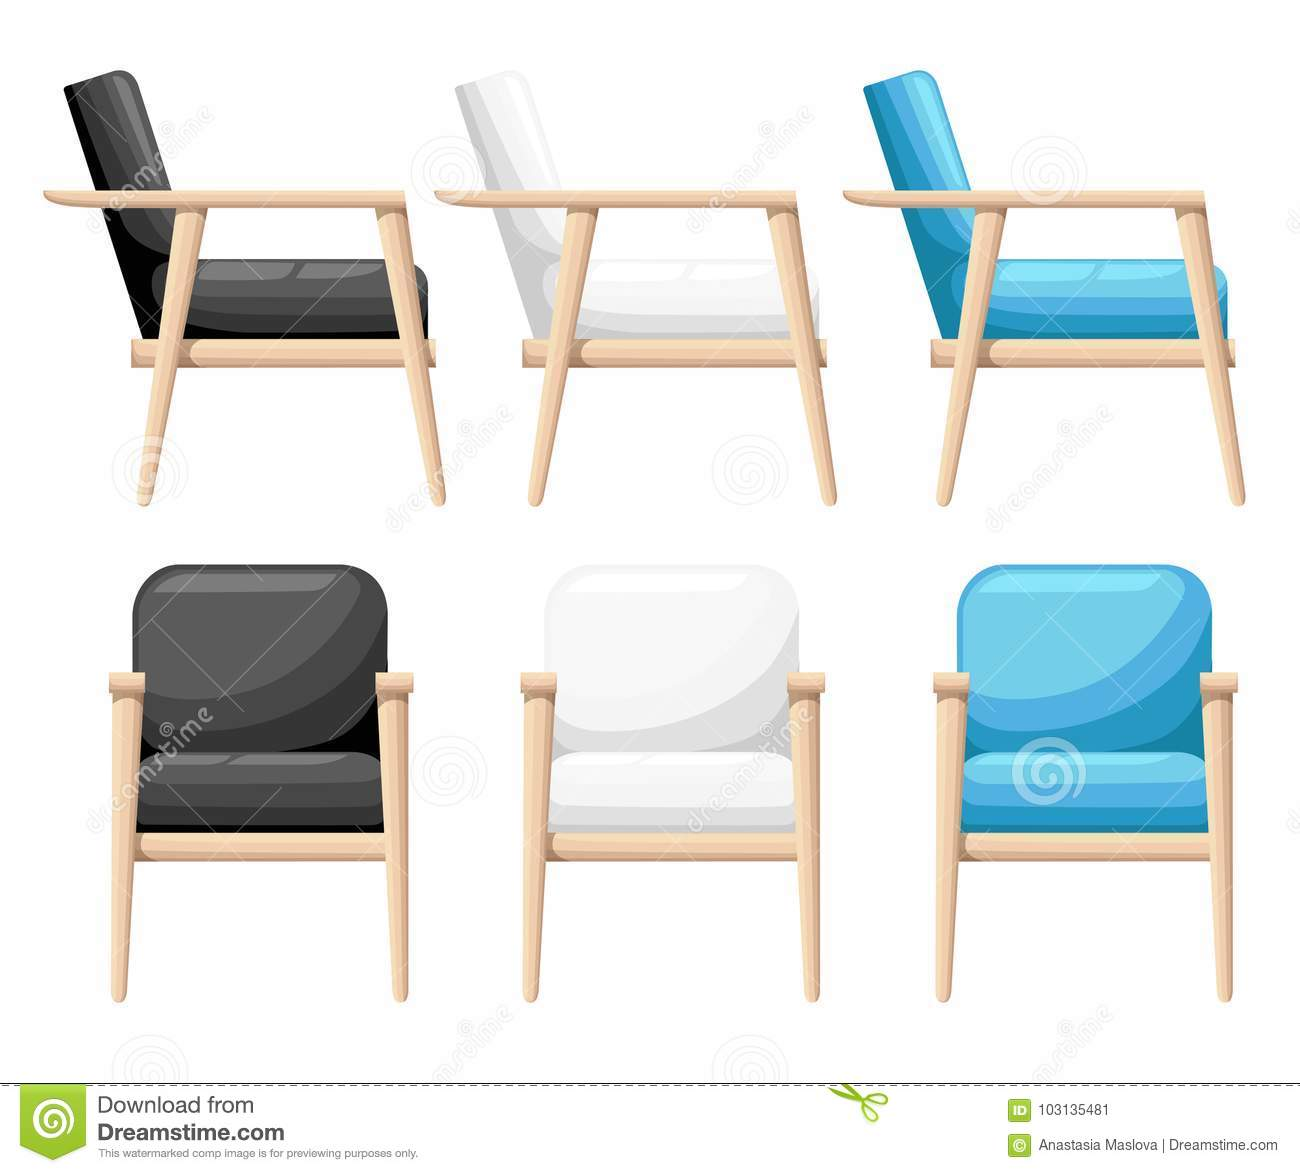 Download Chair Realistic Icon Set Four Identical Chairs With Different  Colors Are Soft Colorful With Wooden